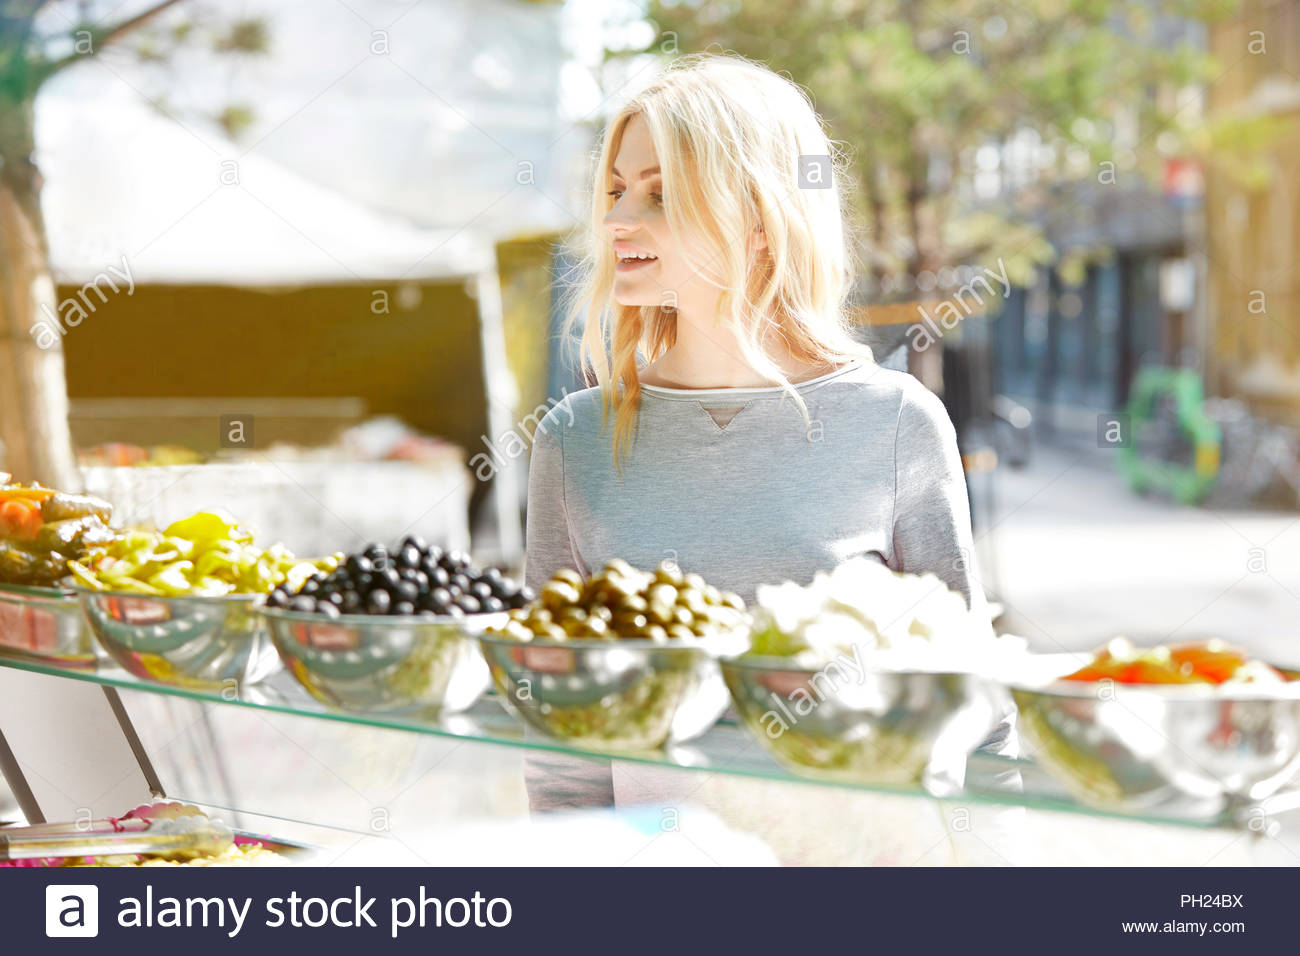 Jeune femme shopping au stand. Photo Stock